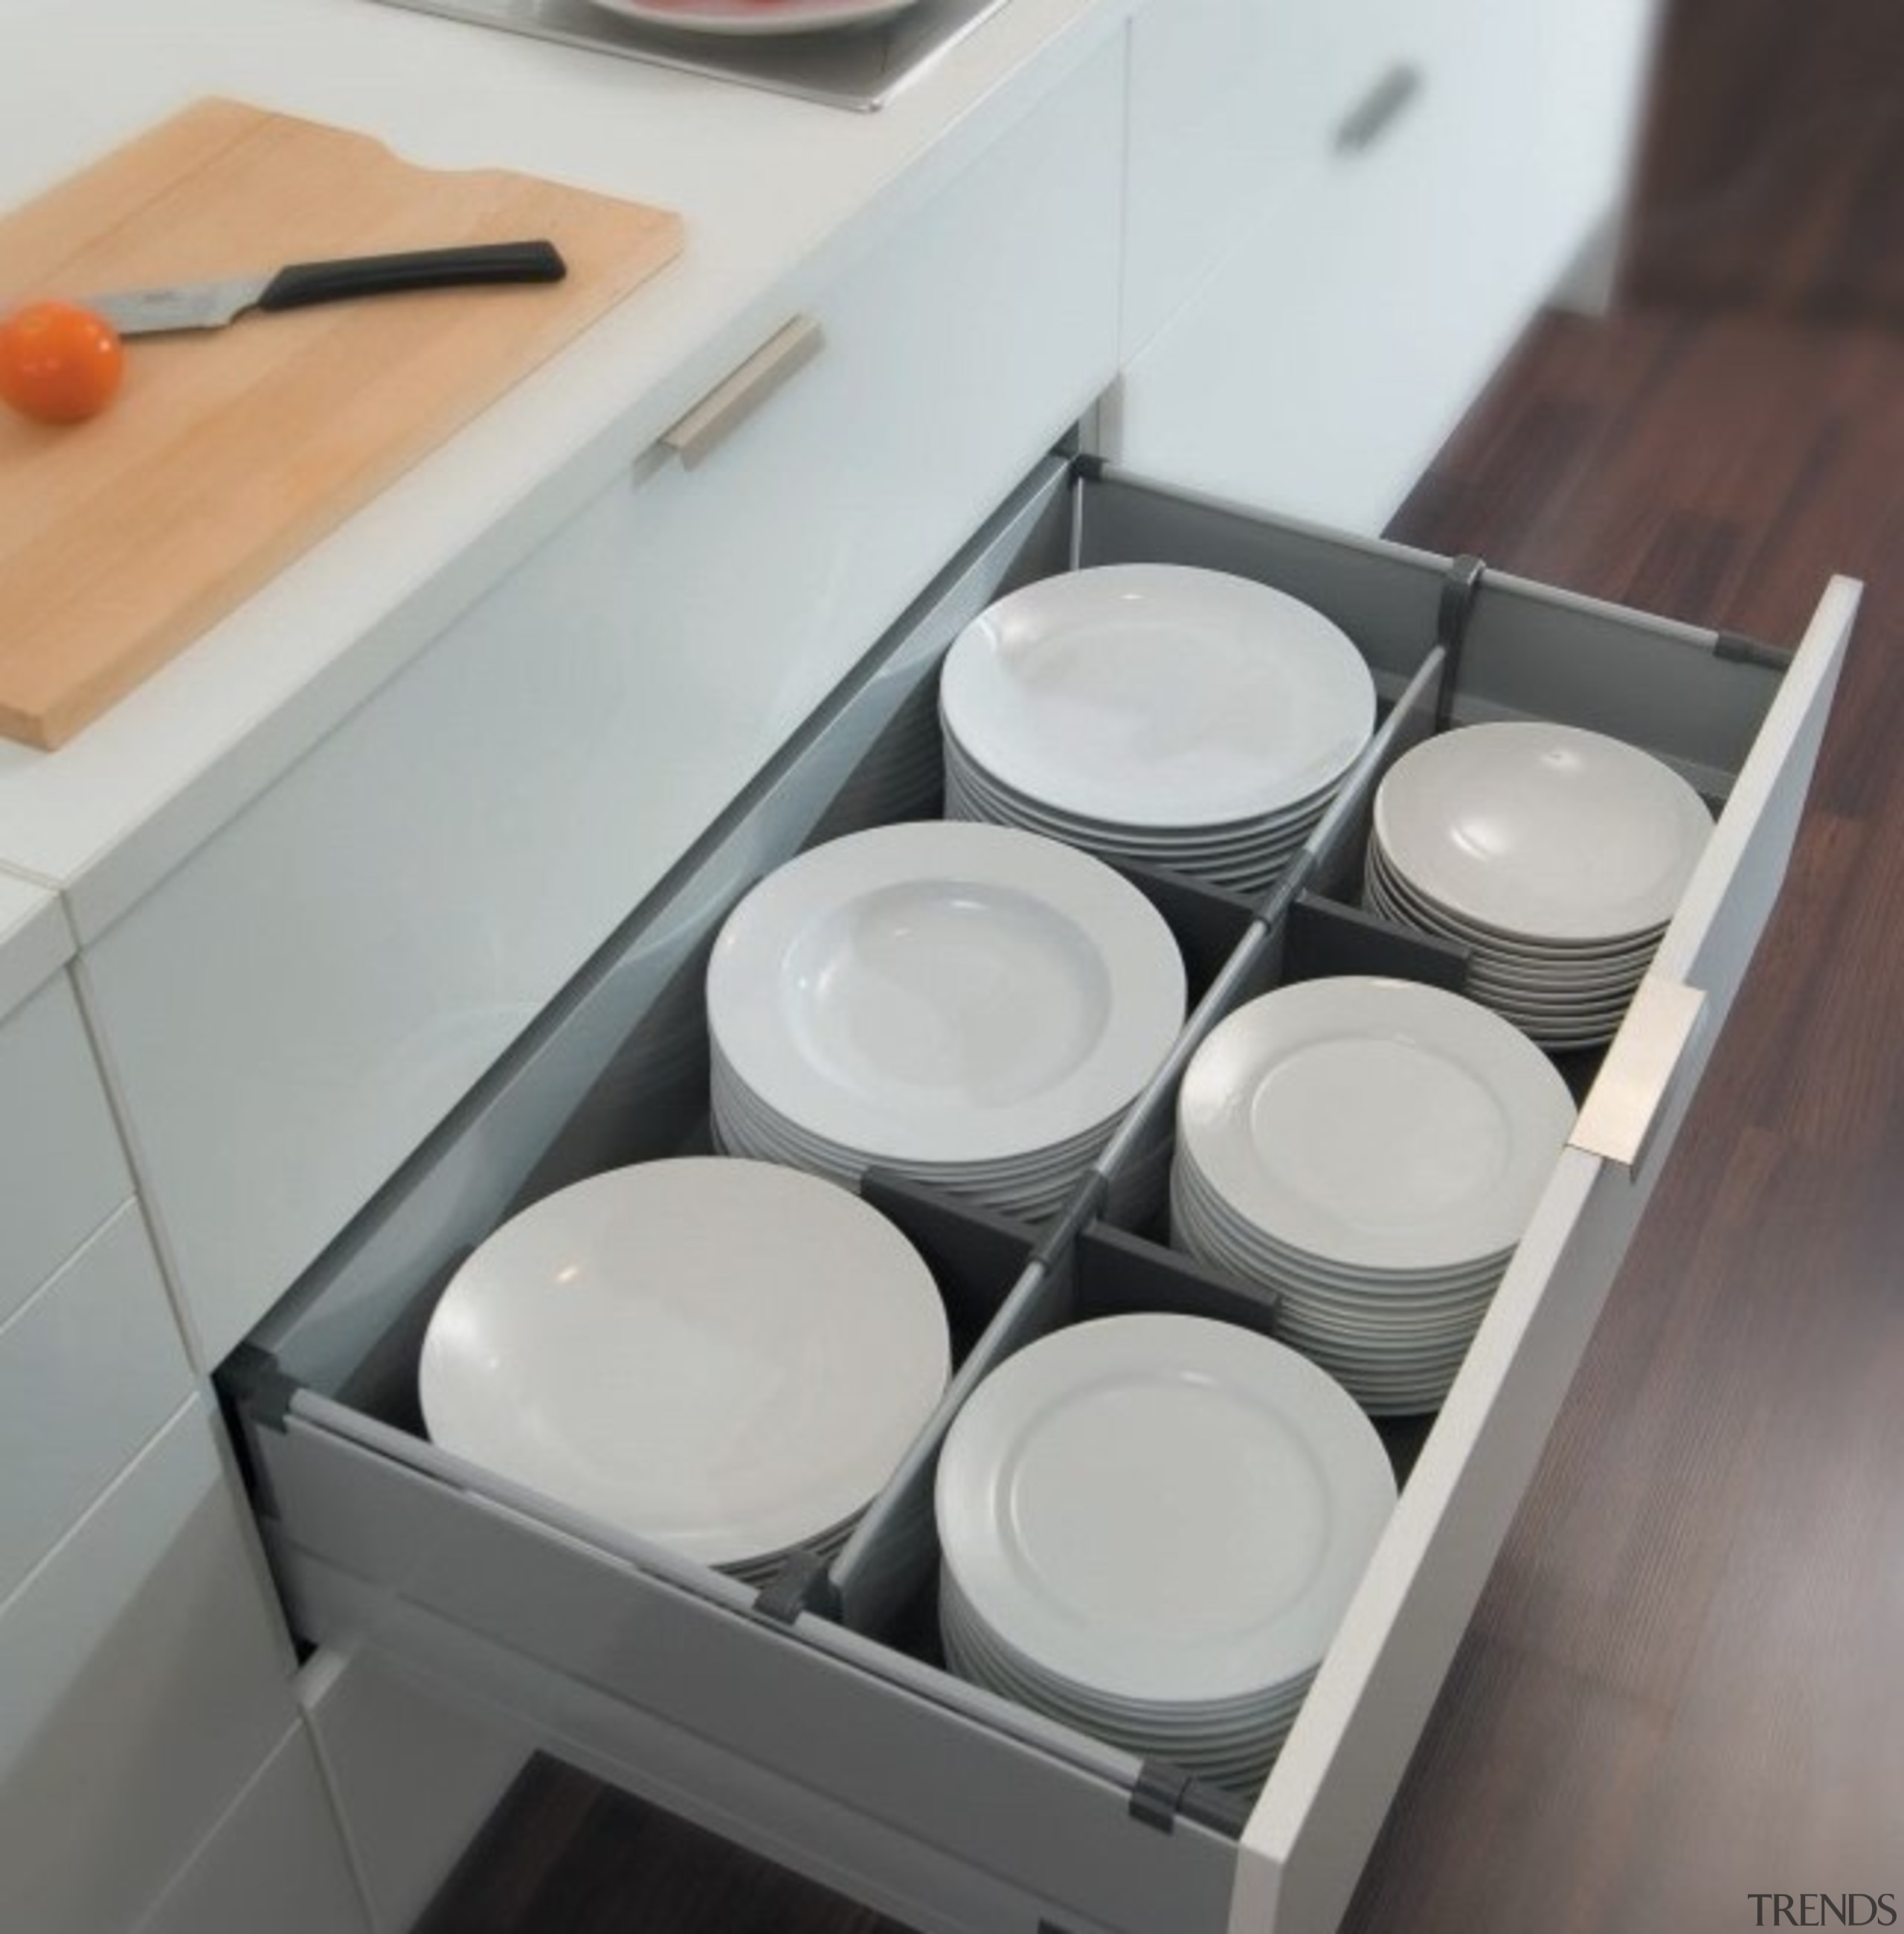 Harn hold quality to be of paramount importance drawer, furniture, product, product design, gray